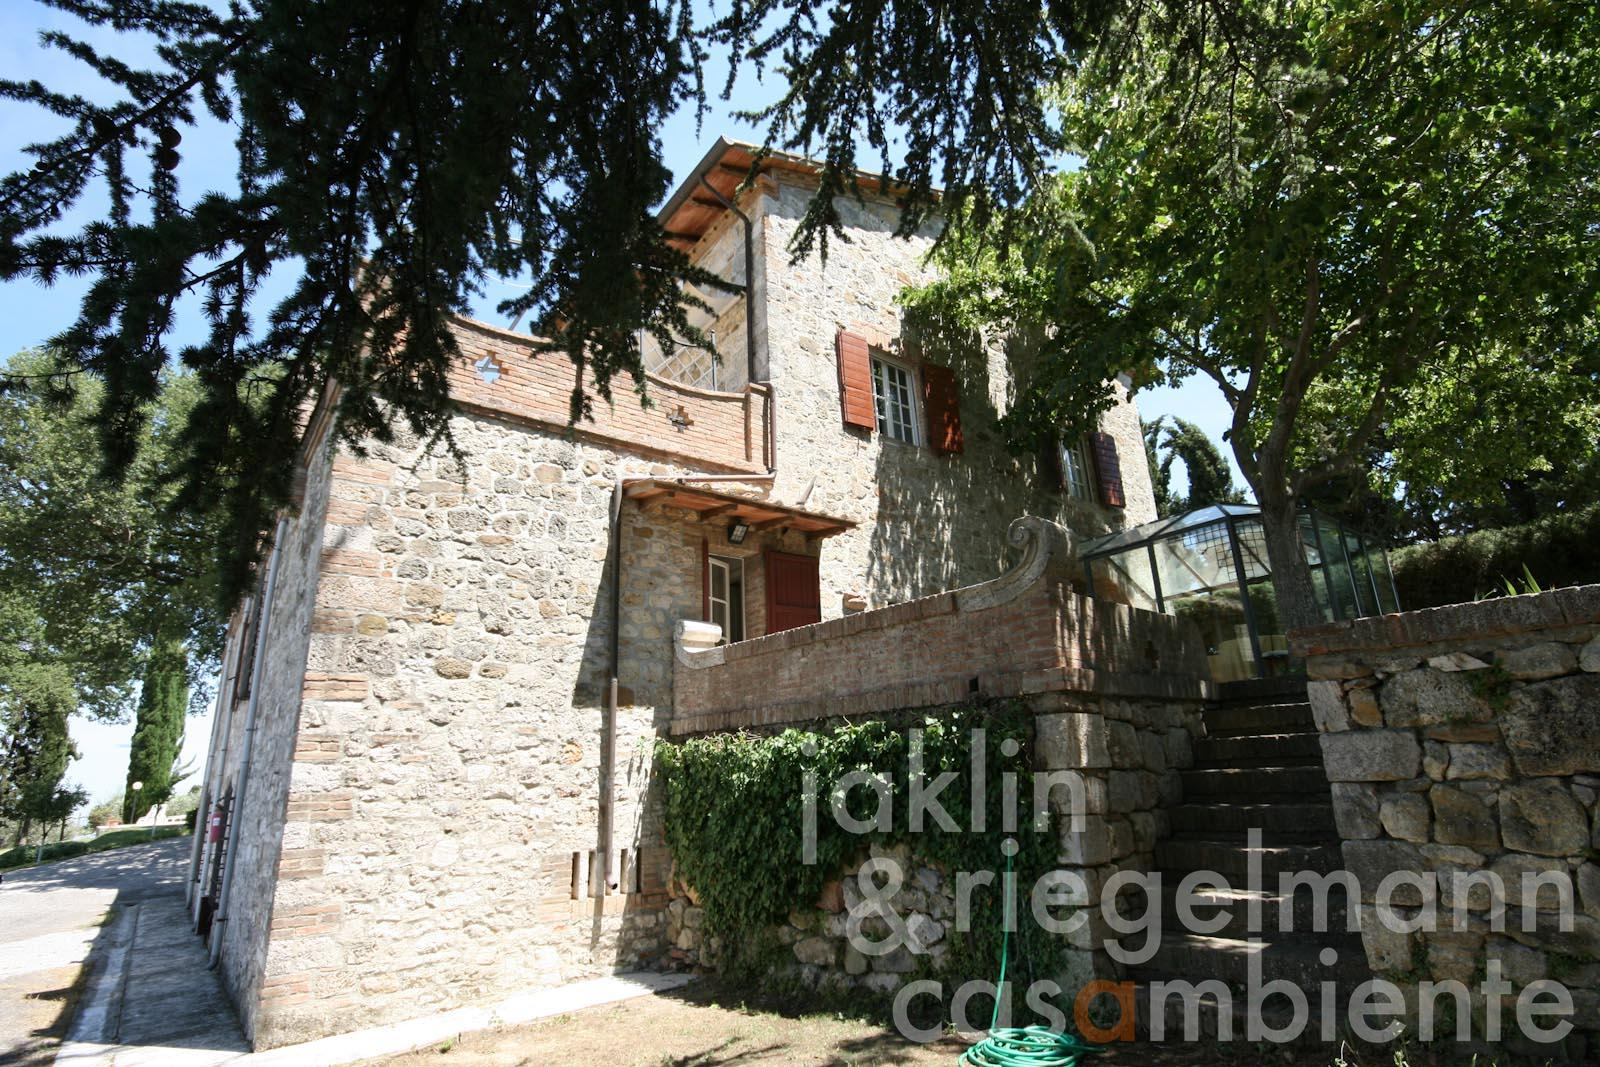 country estate for sale in italy tuscany siena sarteano 18th